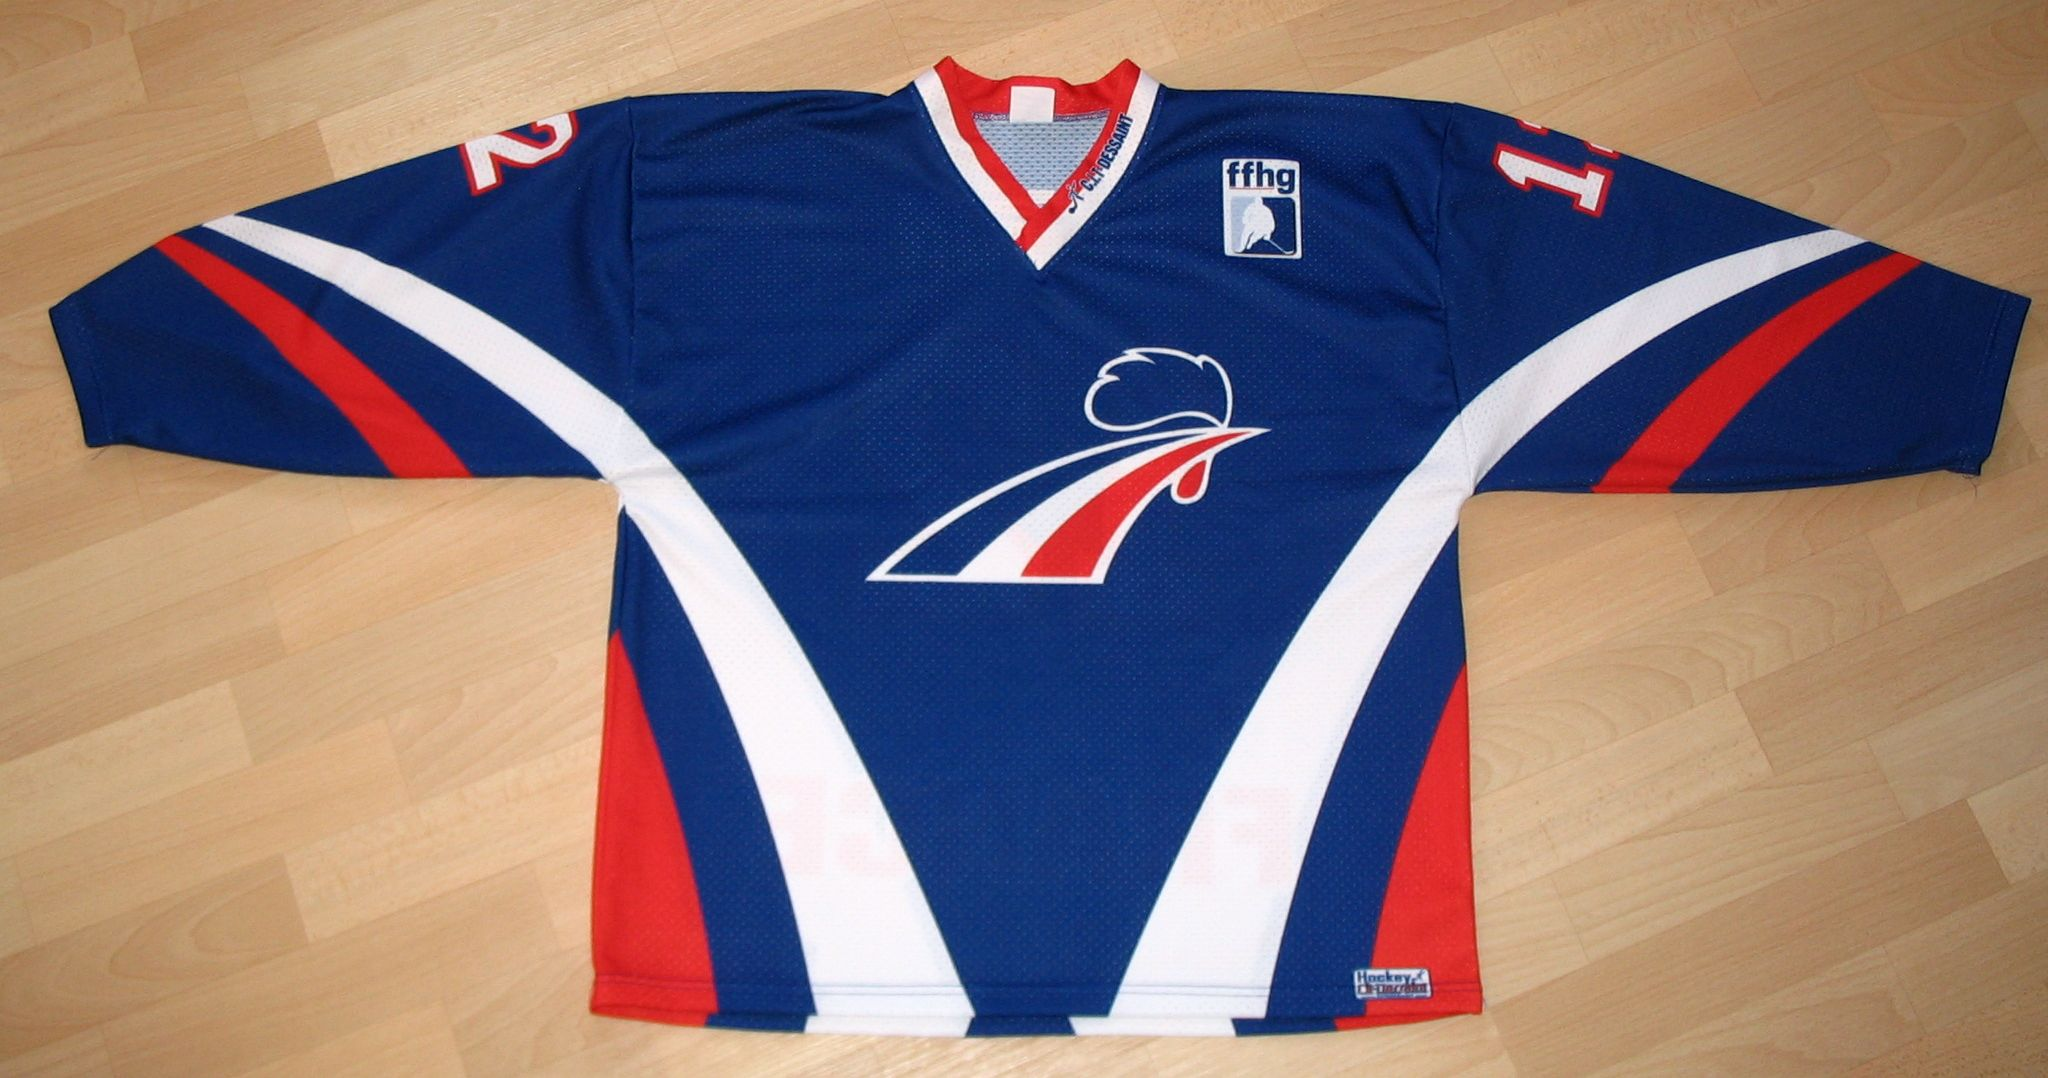 Hockey jersey - Wikipedia c7a3f95a87e